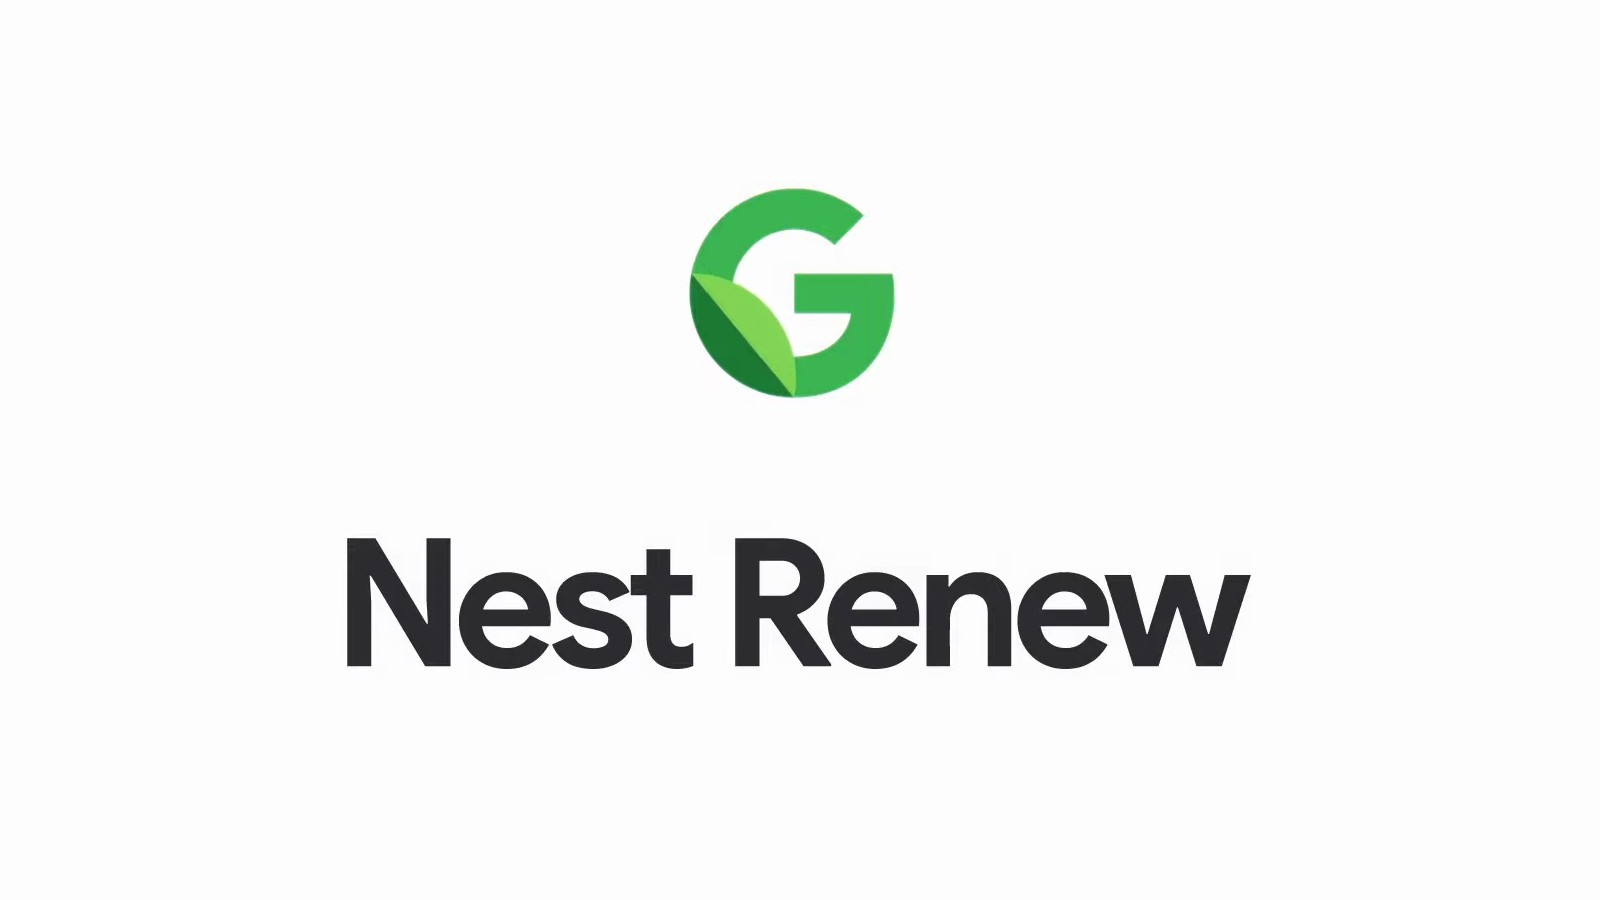 Nest Renew makes your smart thermostat wiser by operating on hours with cleaner energy